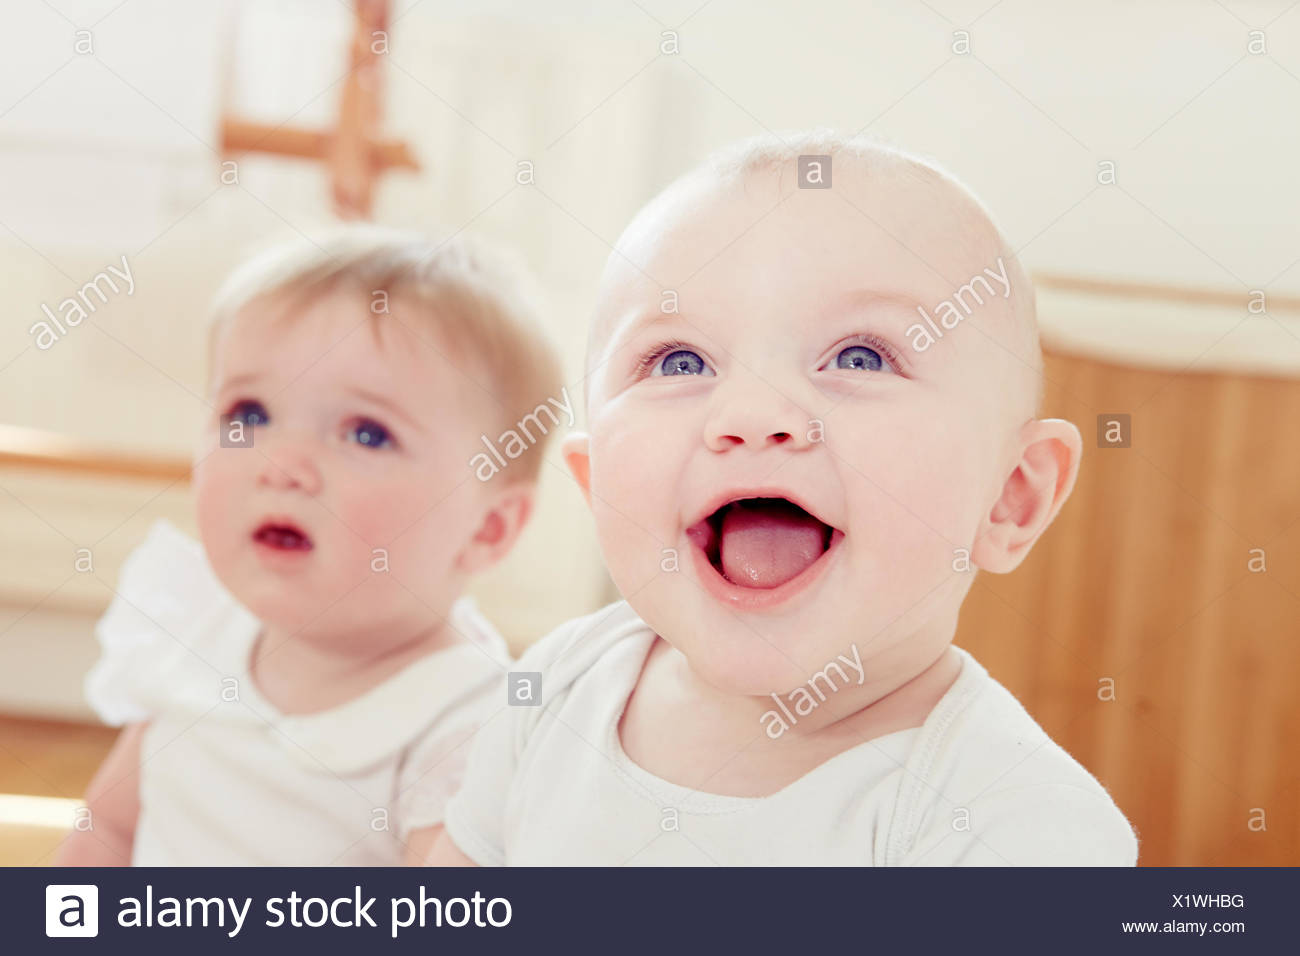 Smiling baby boy with baby girl - Stock Image